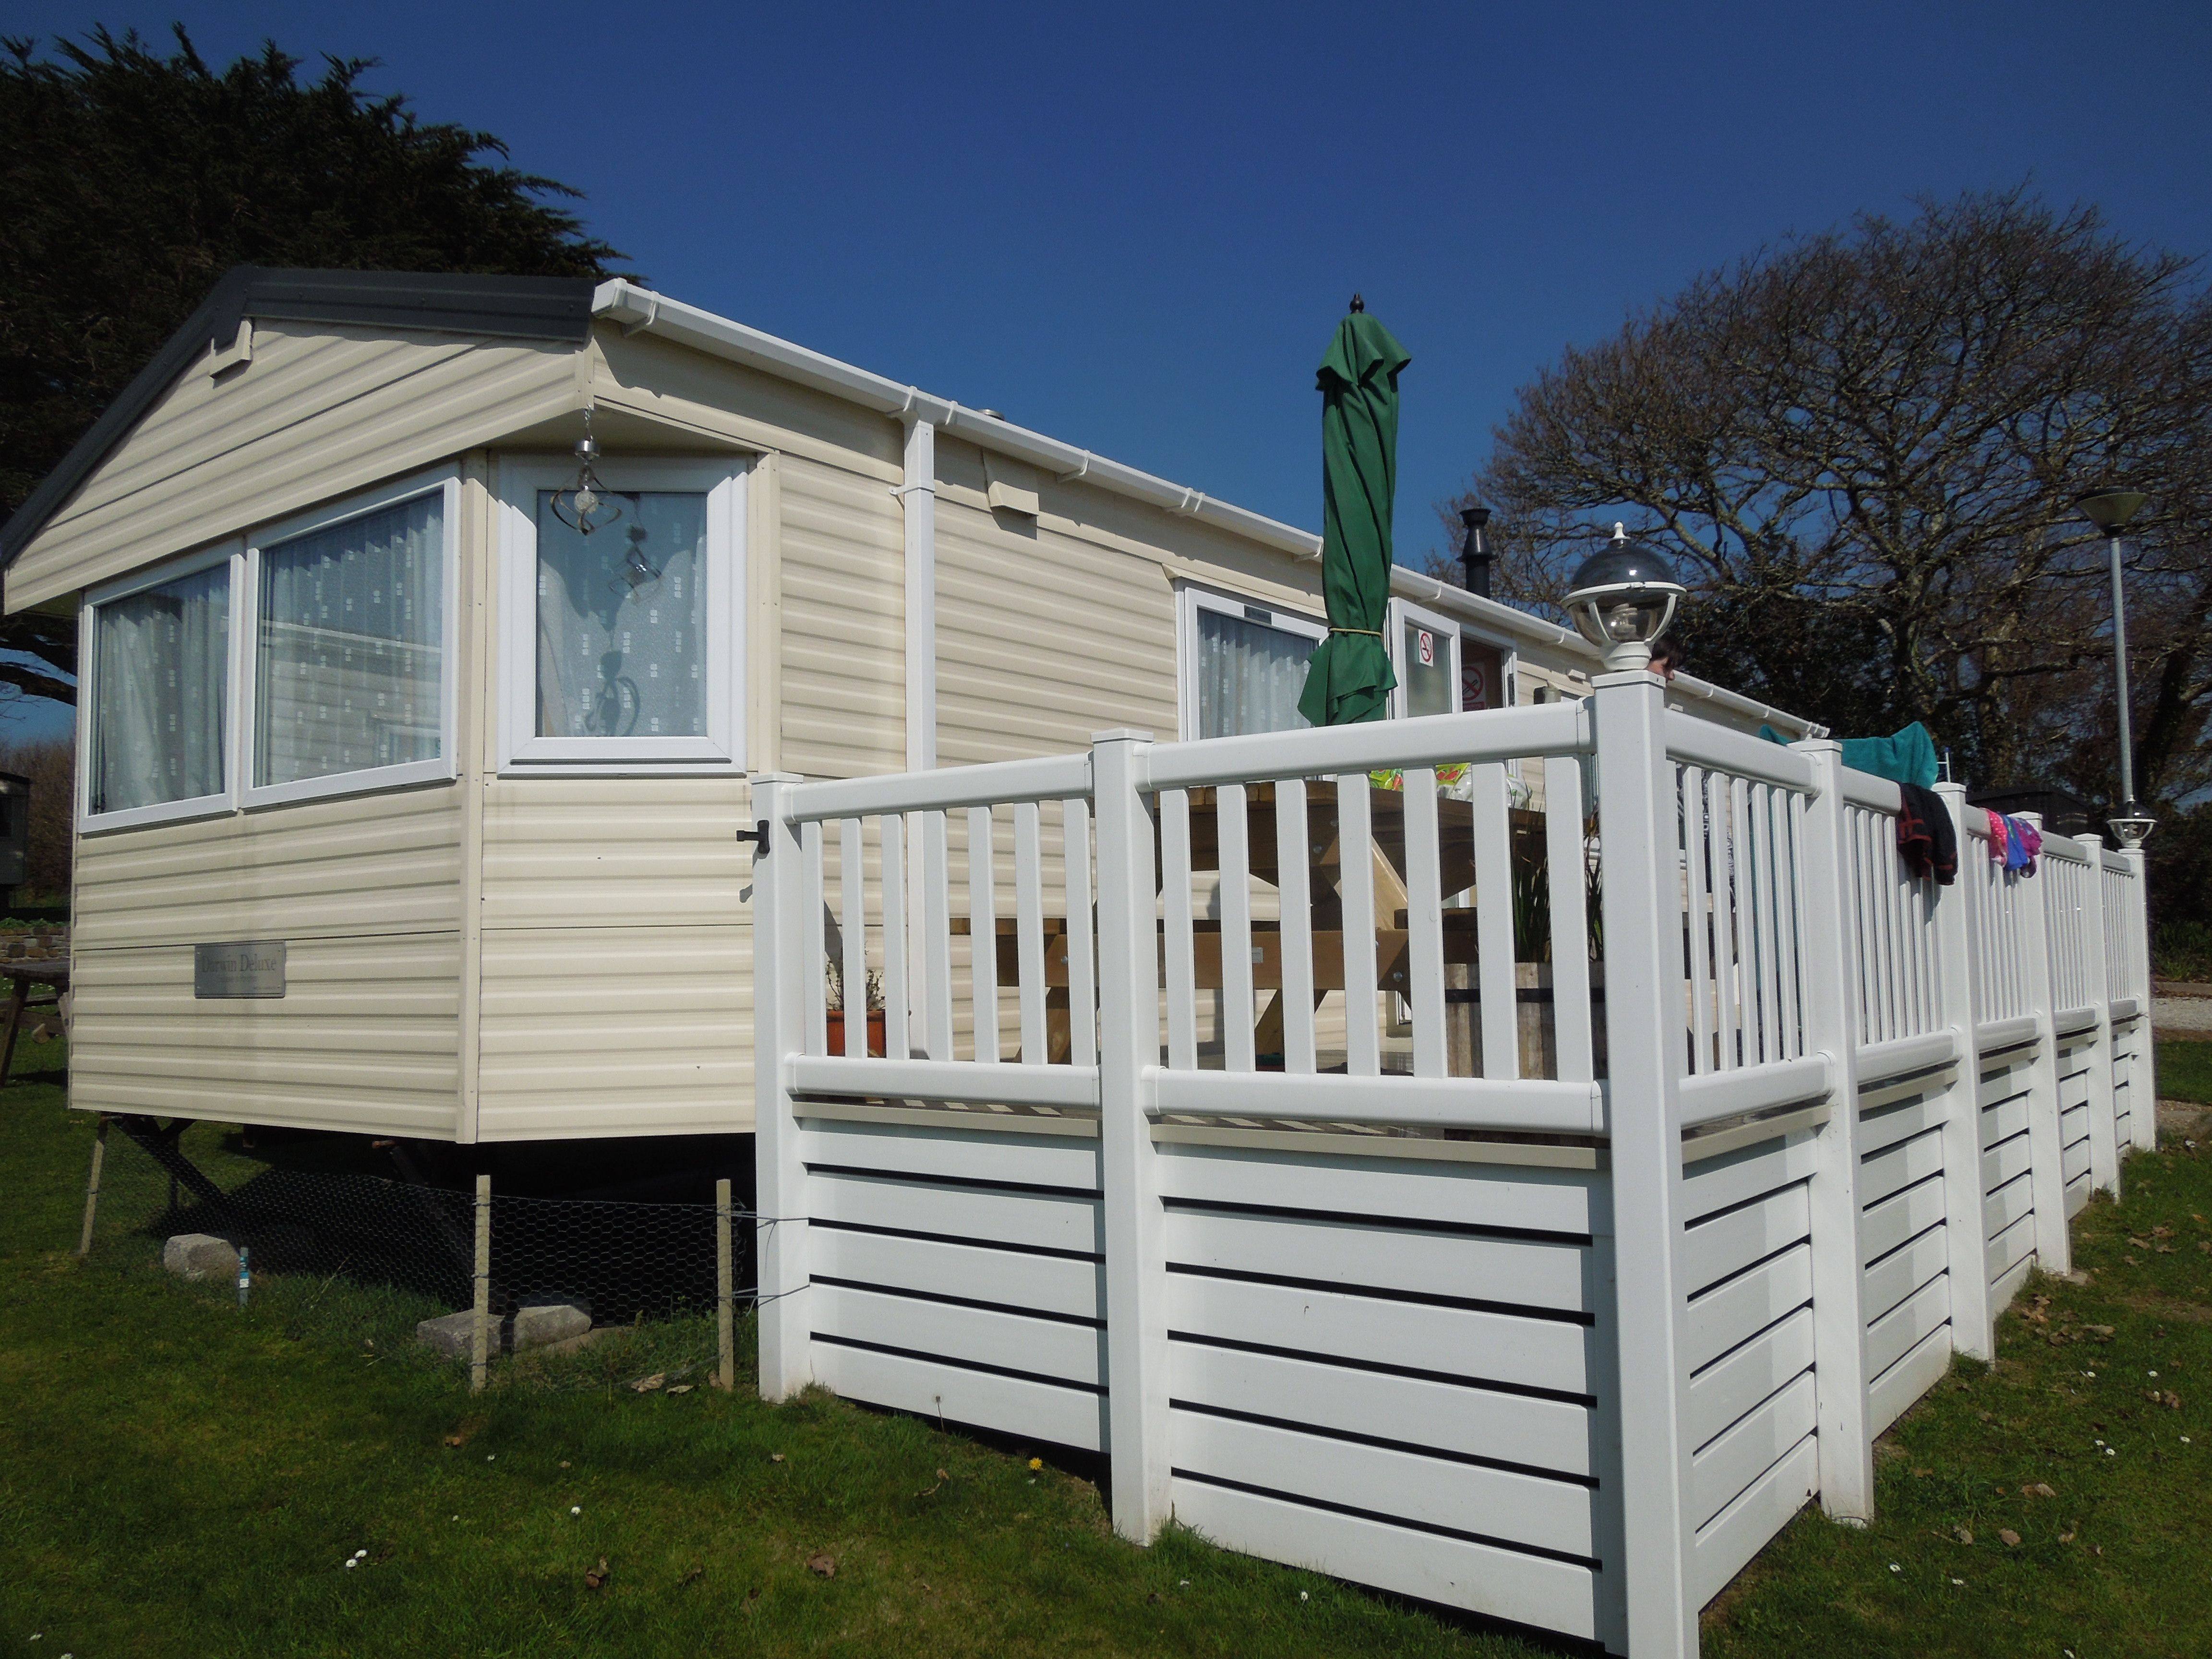 Hilltop 148 One Of Our 2 Caravans On Looe Bay Holiday Park